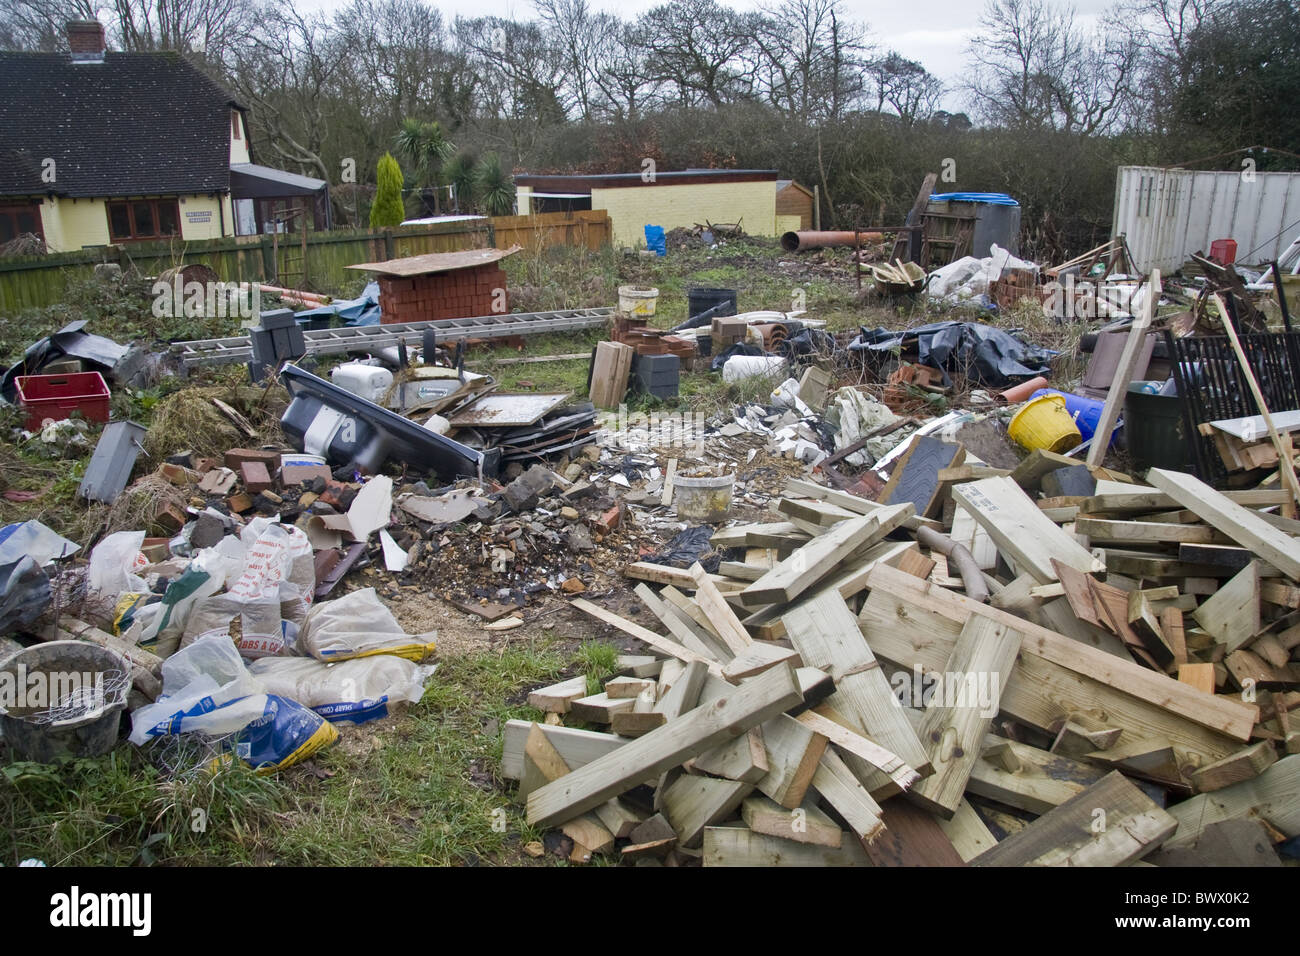 Chaos Untidy Disorganised Mess Lazy Garden Backyard Junk Rubbish Builders  Milford On Sea Hampshire England UK Pollution Pollute